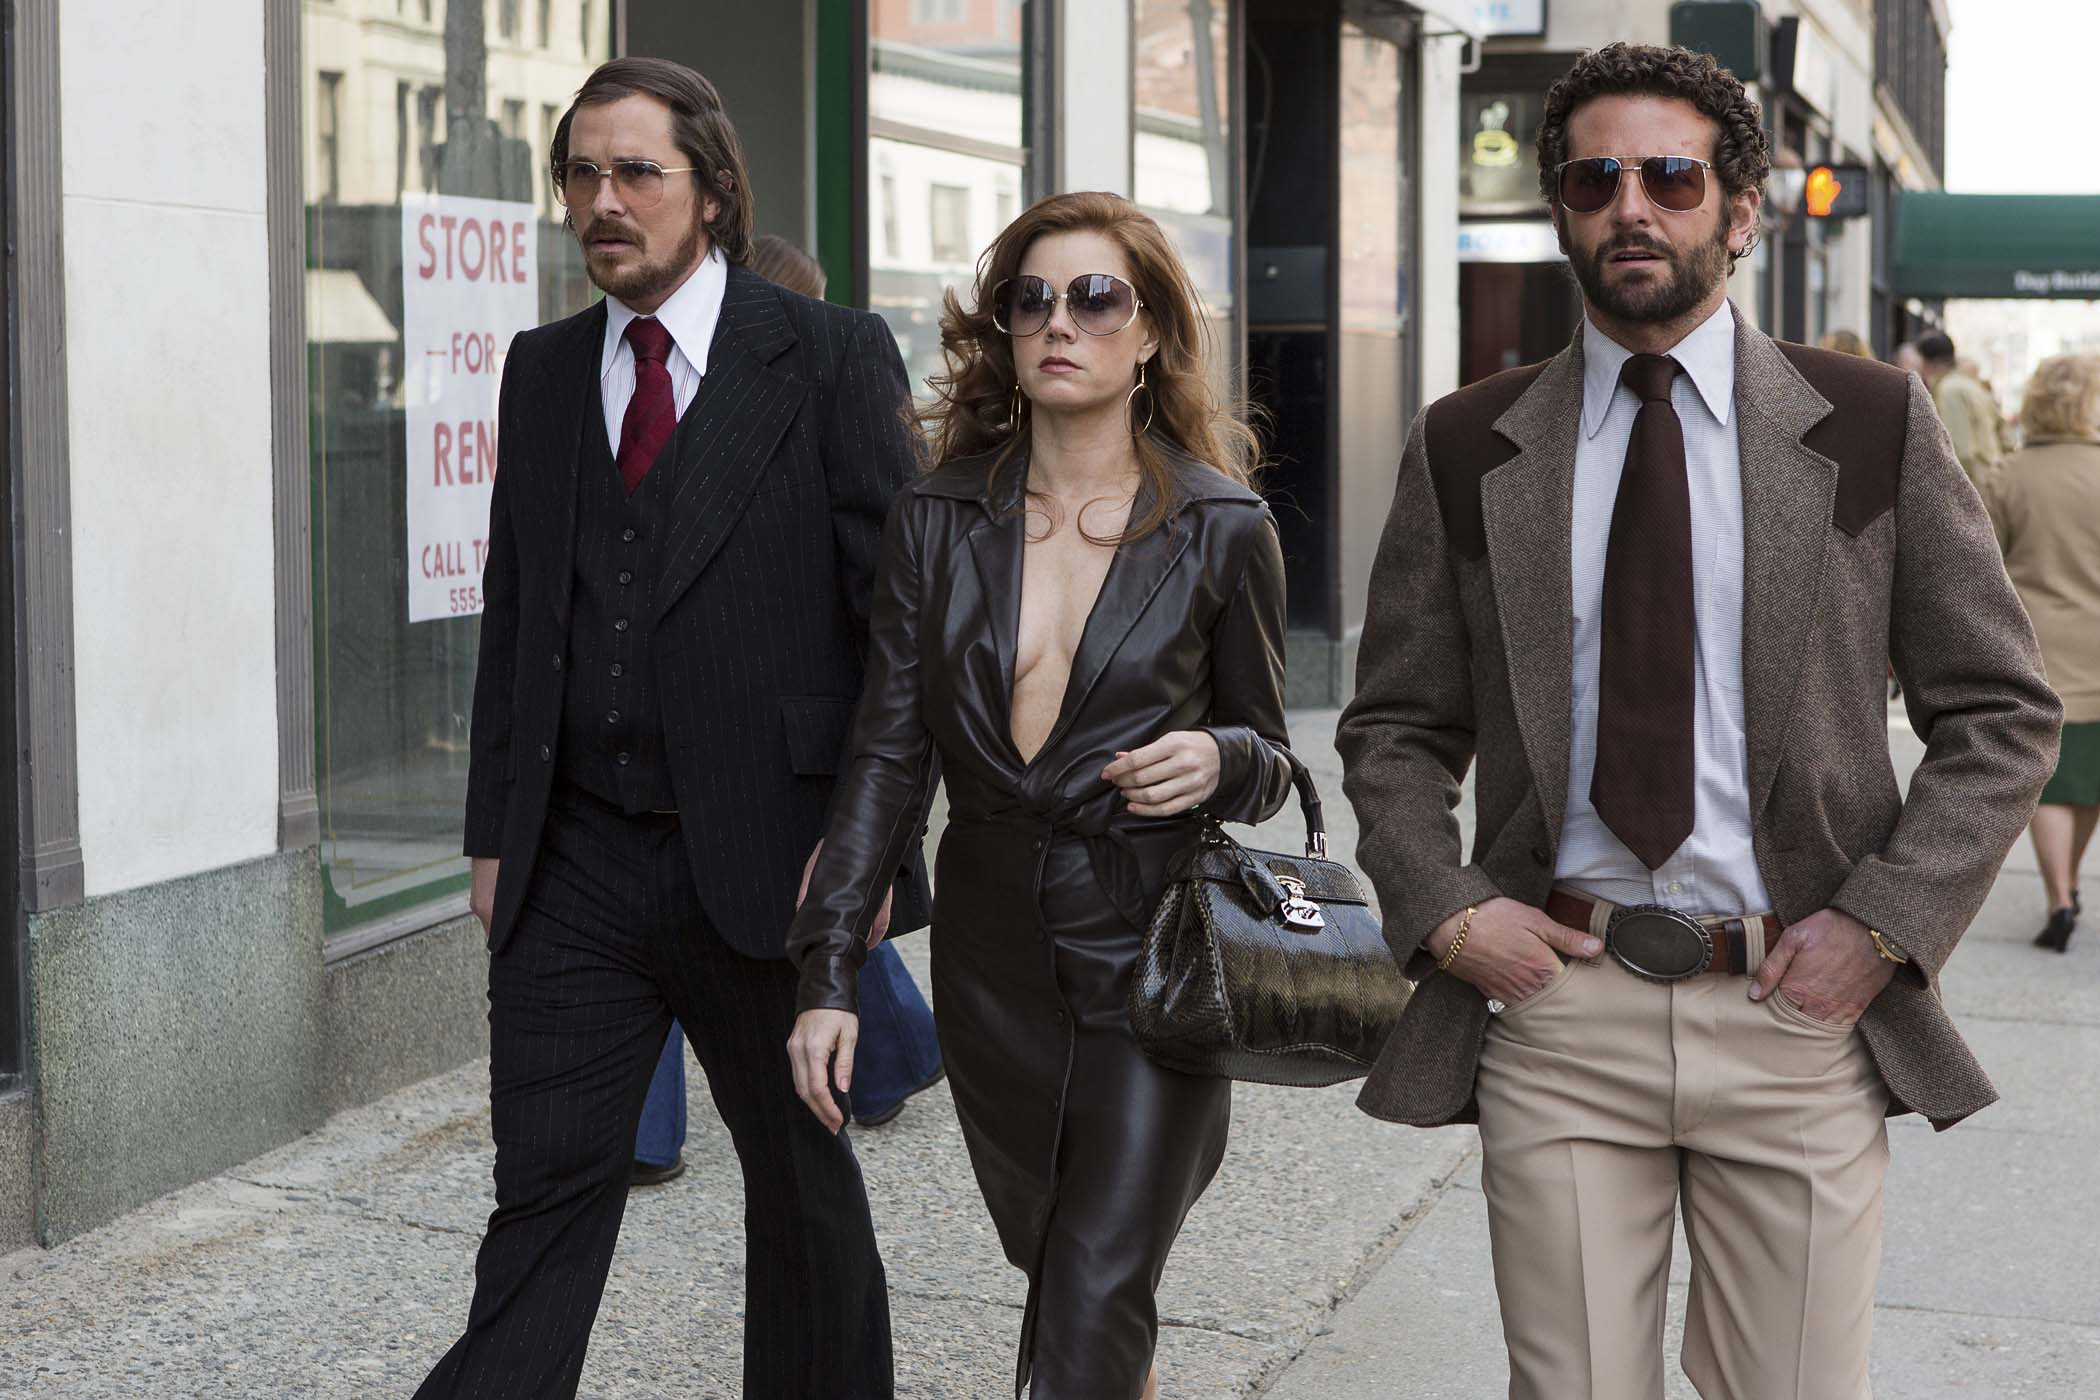 Irving Rosenfeld (Christian Bale), Sydney Prosser (Amy Adams) & Richie Dimaso (Bradley Cooper) walk down Lexington Ave. in Columbia Pictures' AMERICAN HUSTLE.  (Christian Bale suit, tie, shirt, glasses: vintage / Amy Adams dress: Halston, glasses: vintage Christian Dior, bag: Gucci, shoes: vintage / Bradley Cooper suit, tie shirt, belt, glasses: vintage)